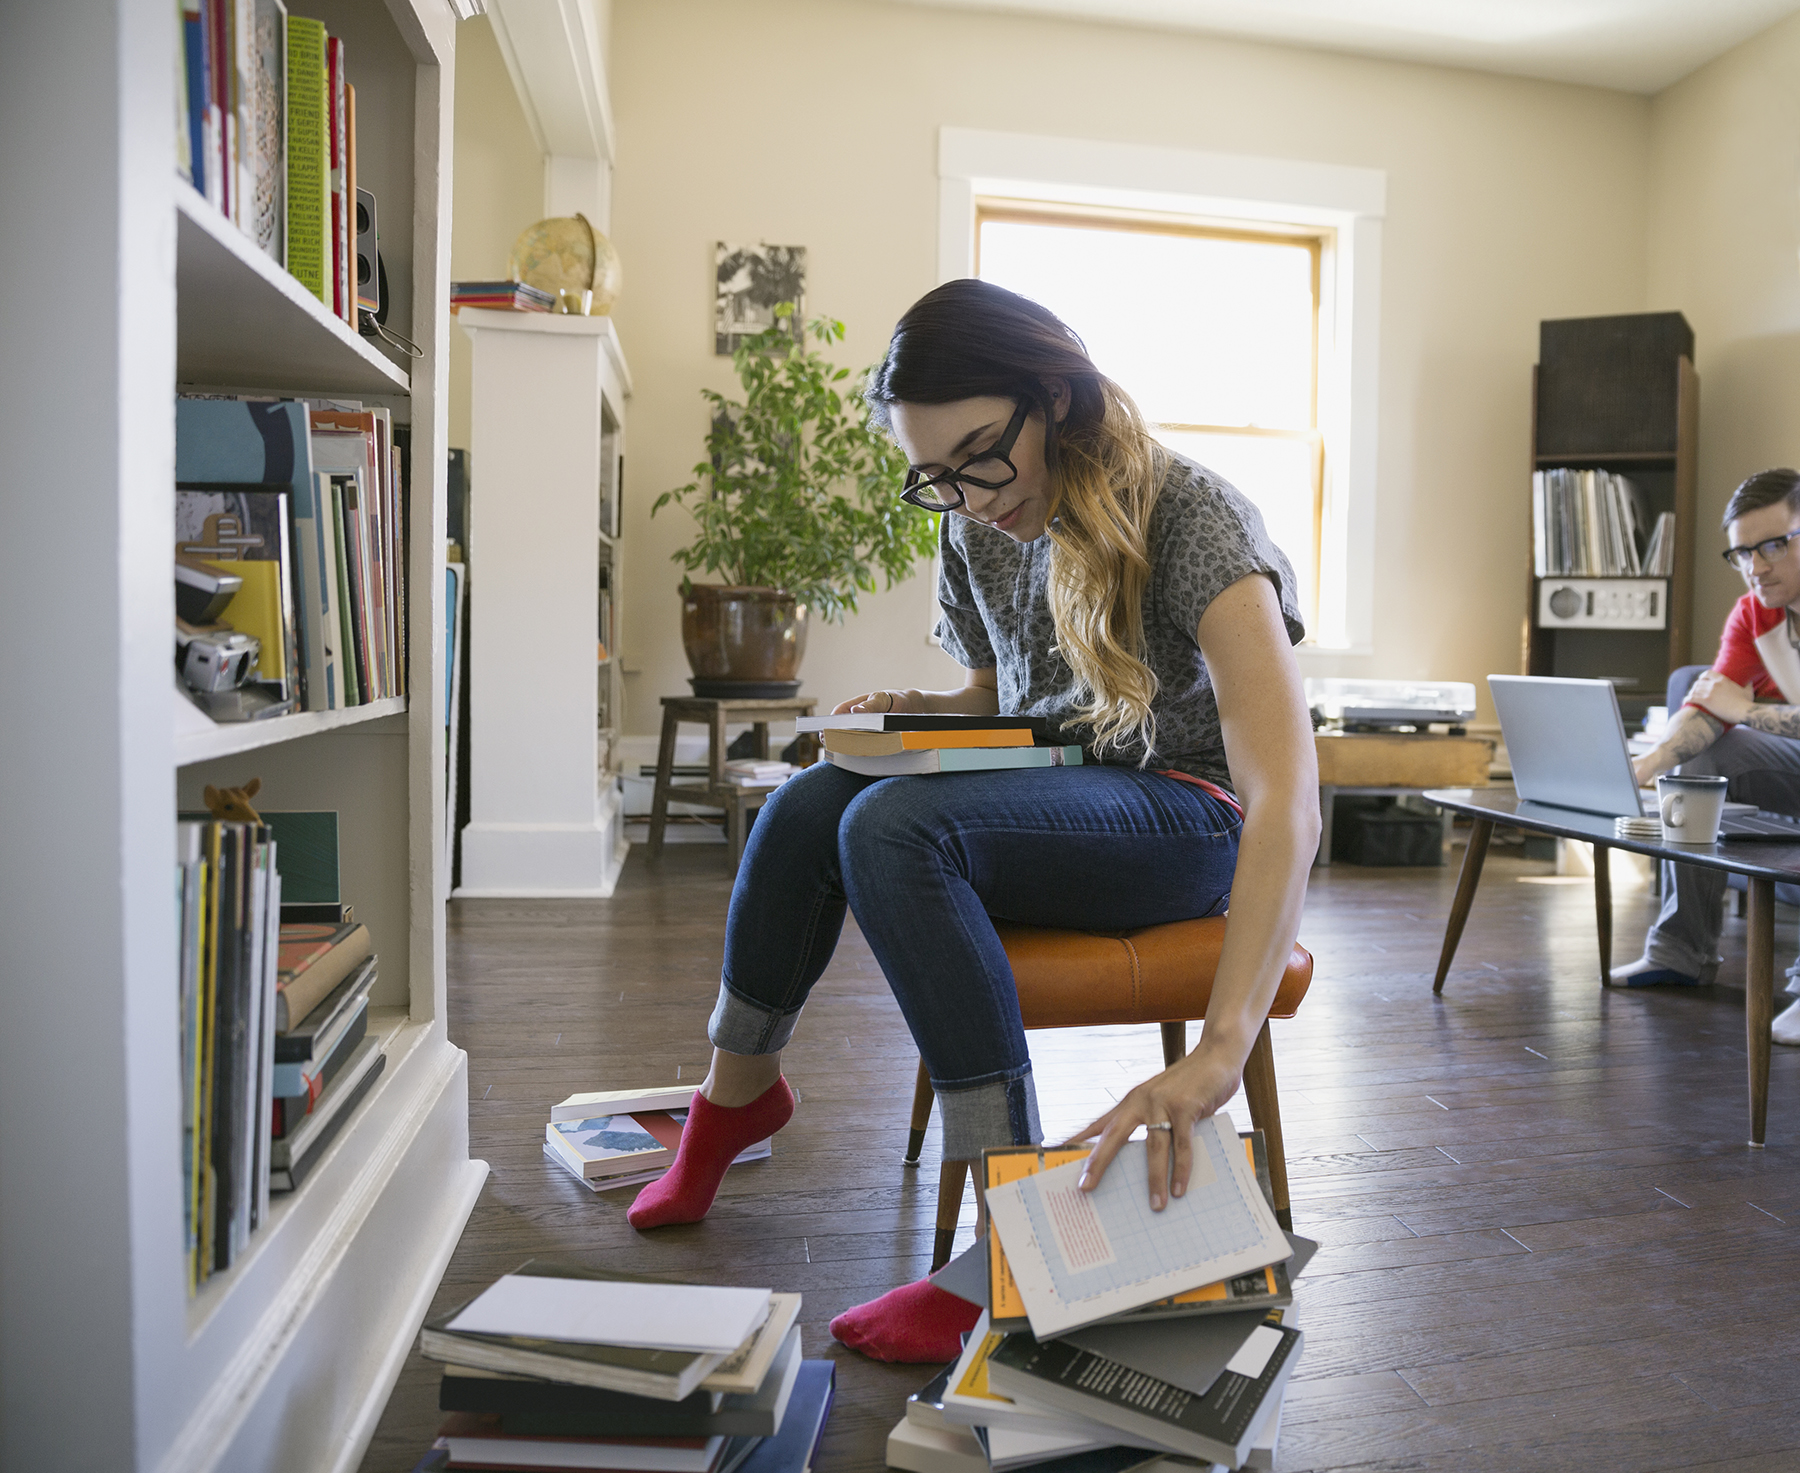 Woman sorting through books in living room